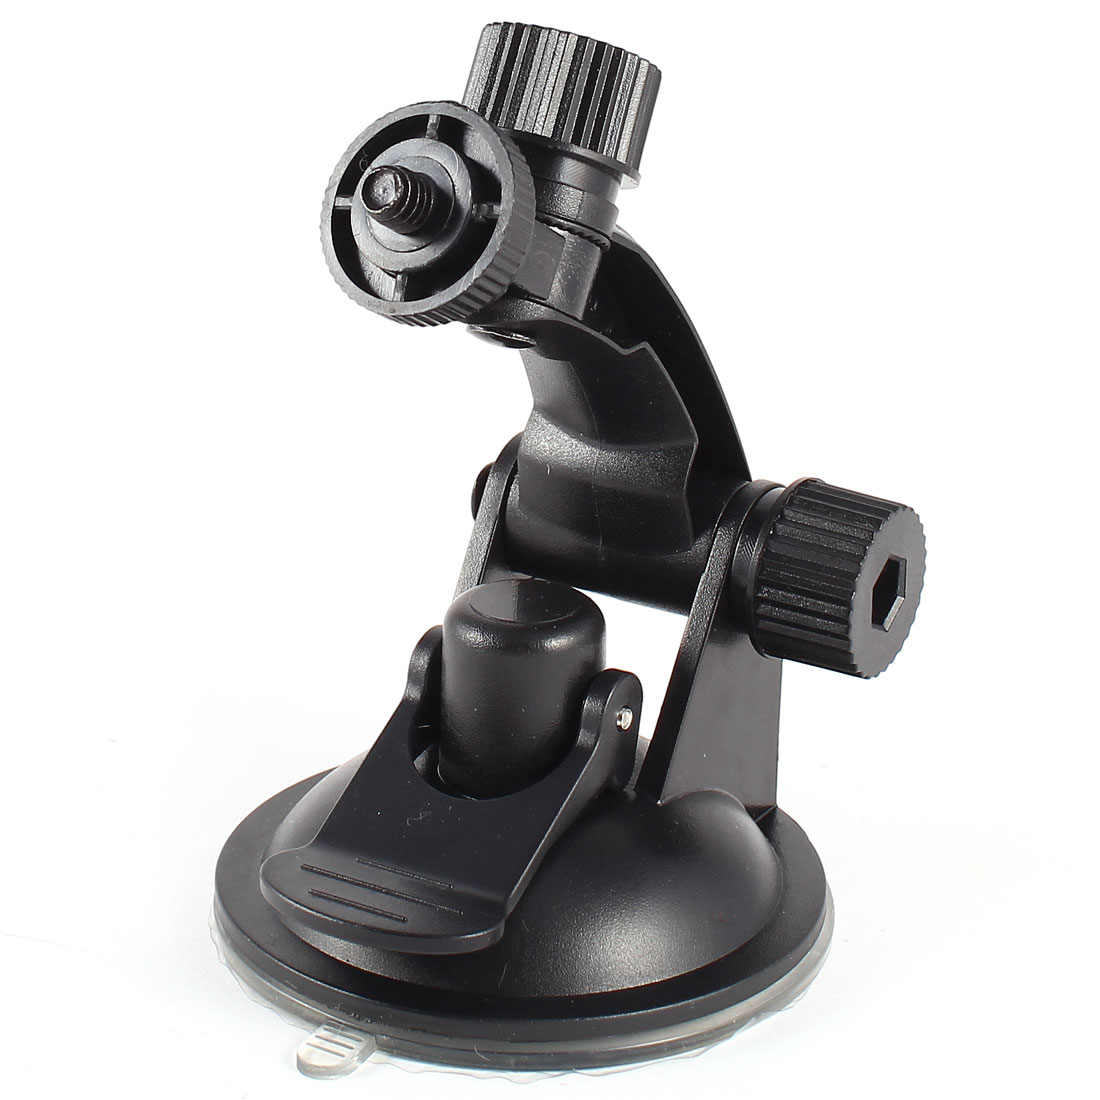 Black Suction Cup Base Car Windshield Camera Mount Bracket 9cm High